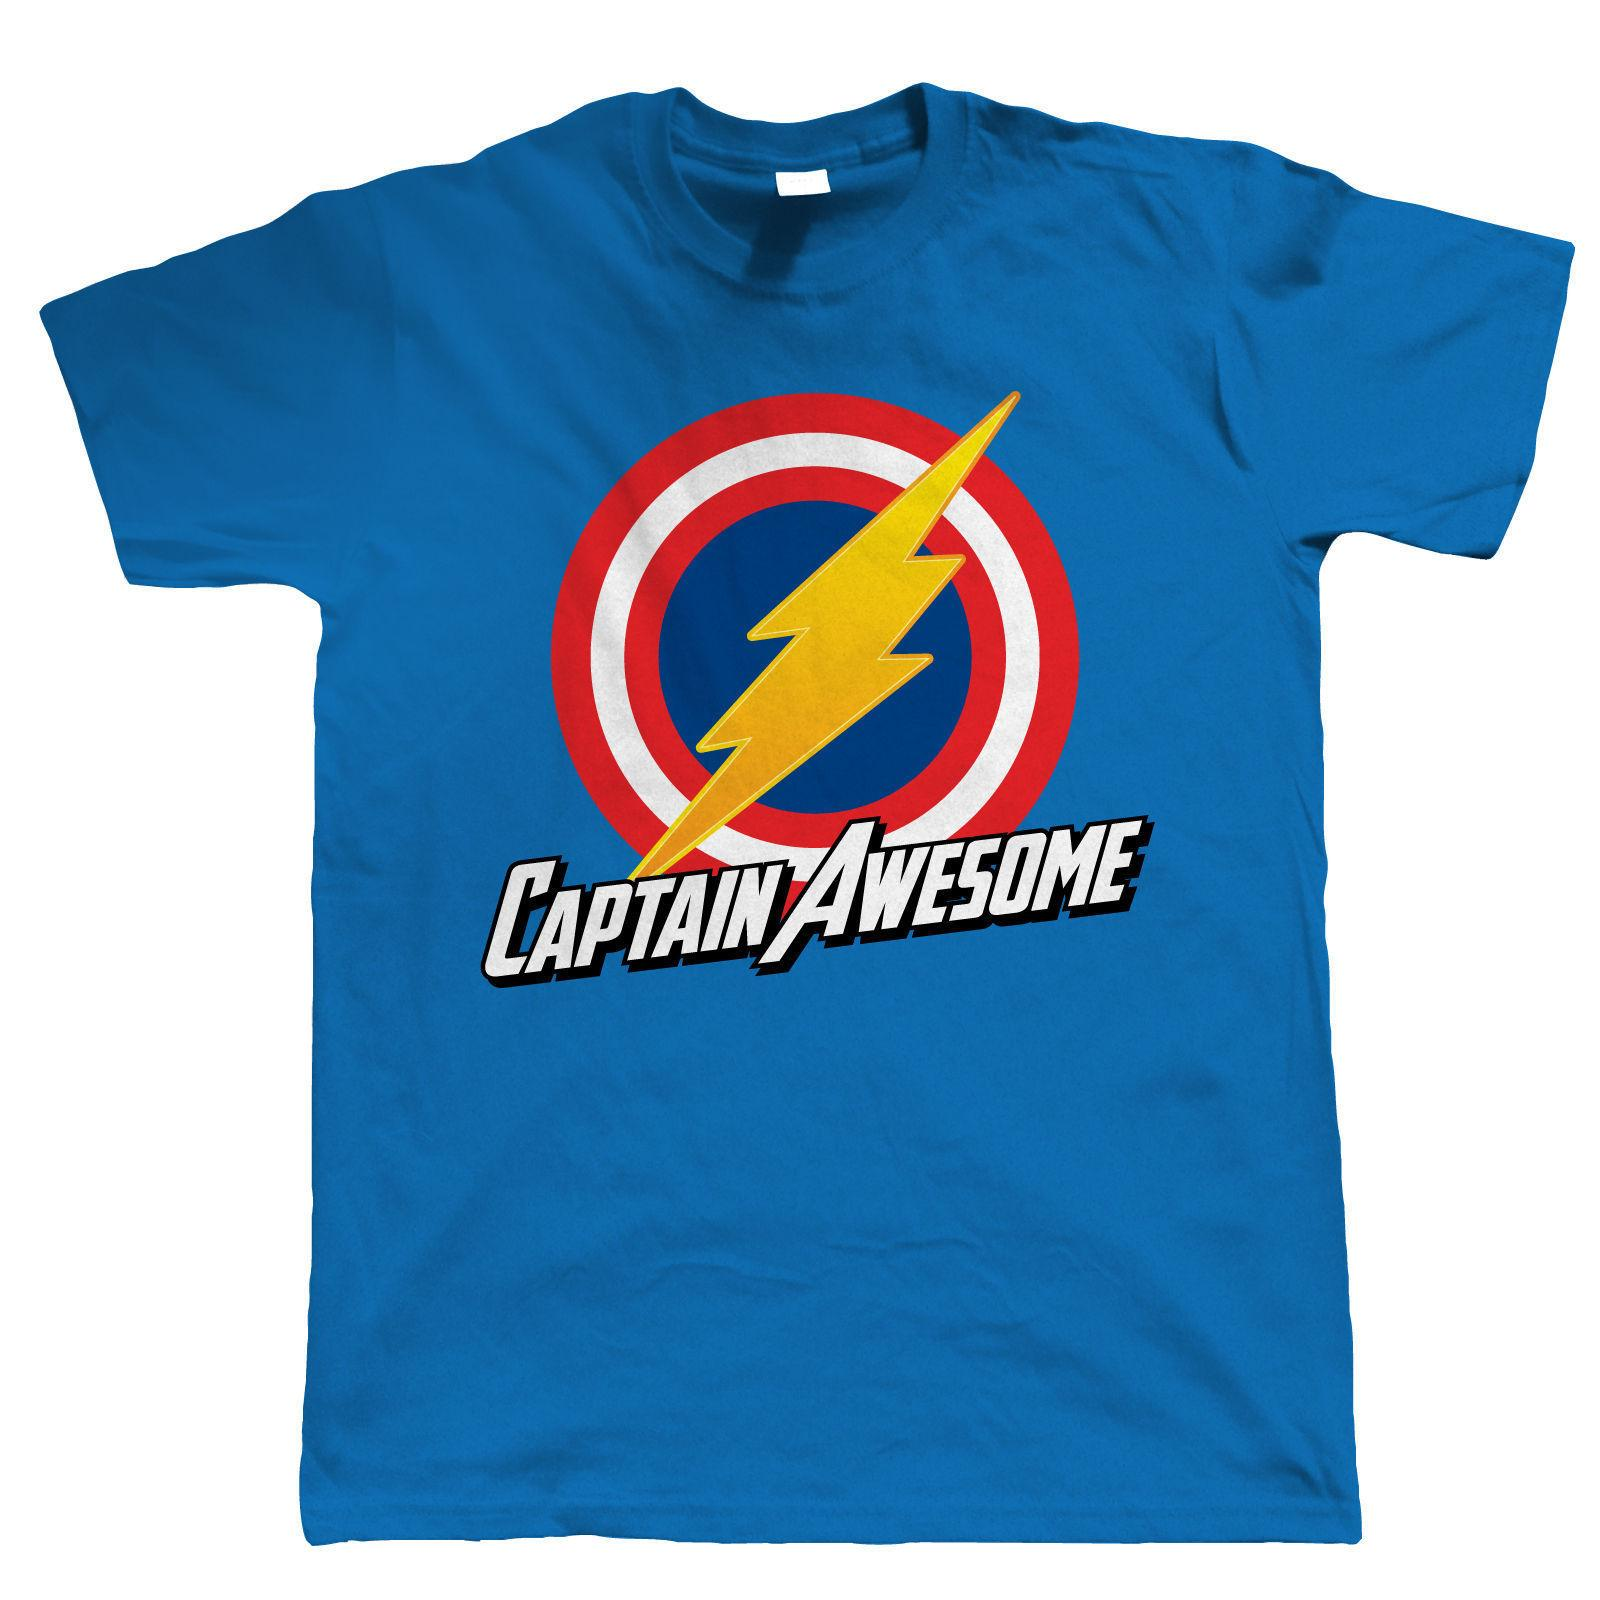 cf364a8f Captain Awesome Mens Funny Super Hero T Shirt Birthday Gift For Dad Him Pre  Cotton T Shirt For Print Tee Shirt Short Sleeve T Shirts In A Day Awesome  Tee ...